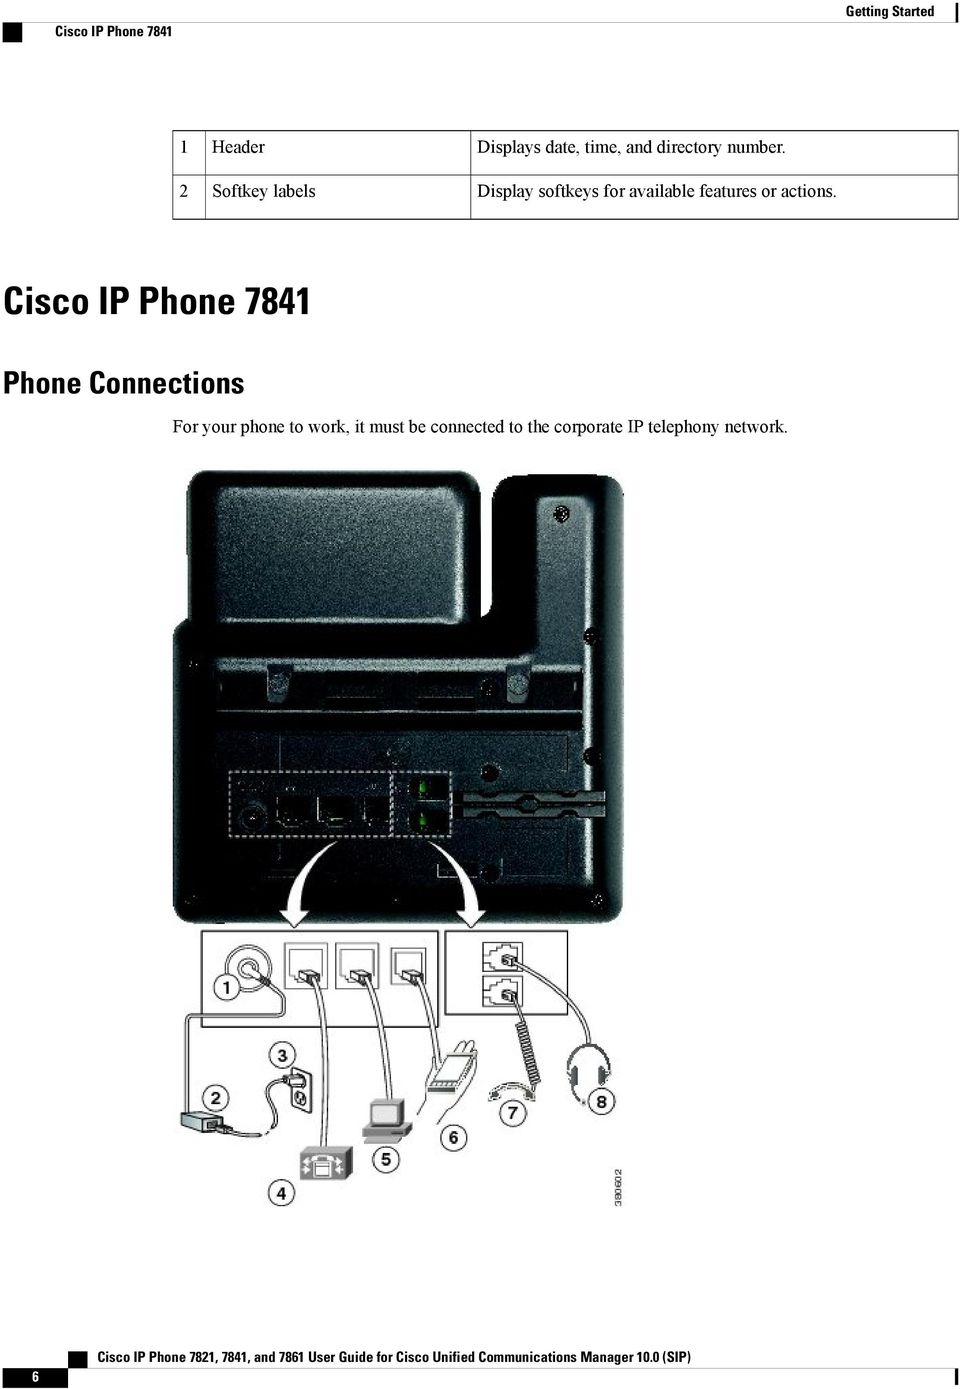 Cisco IP Phone 7821, 7841, and 7861 User Guide for Cisco